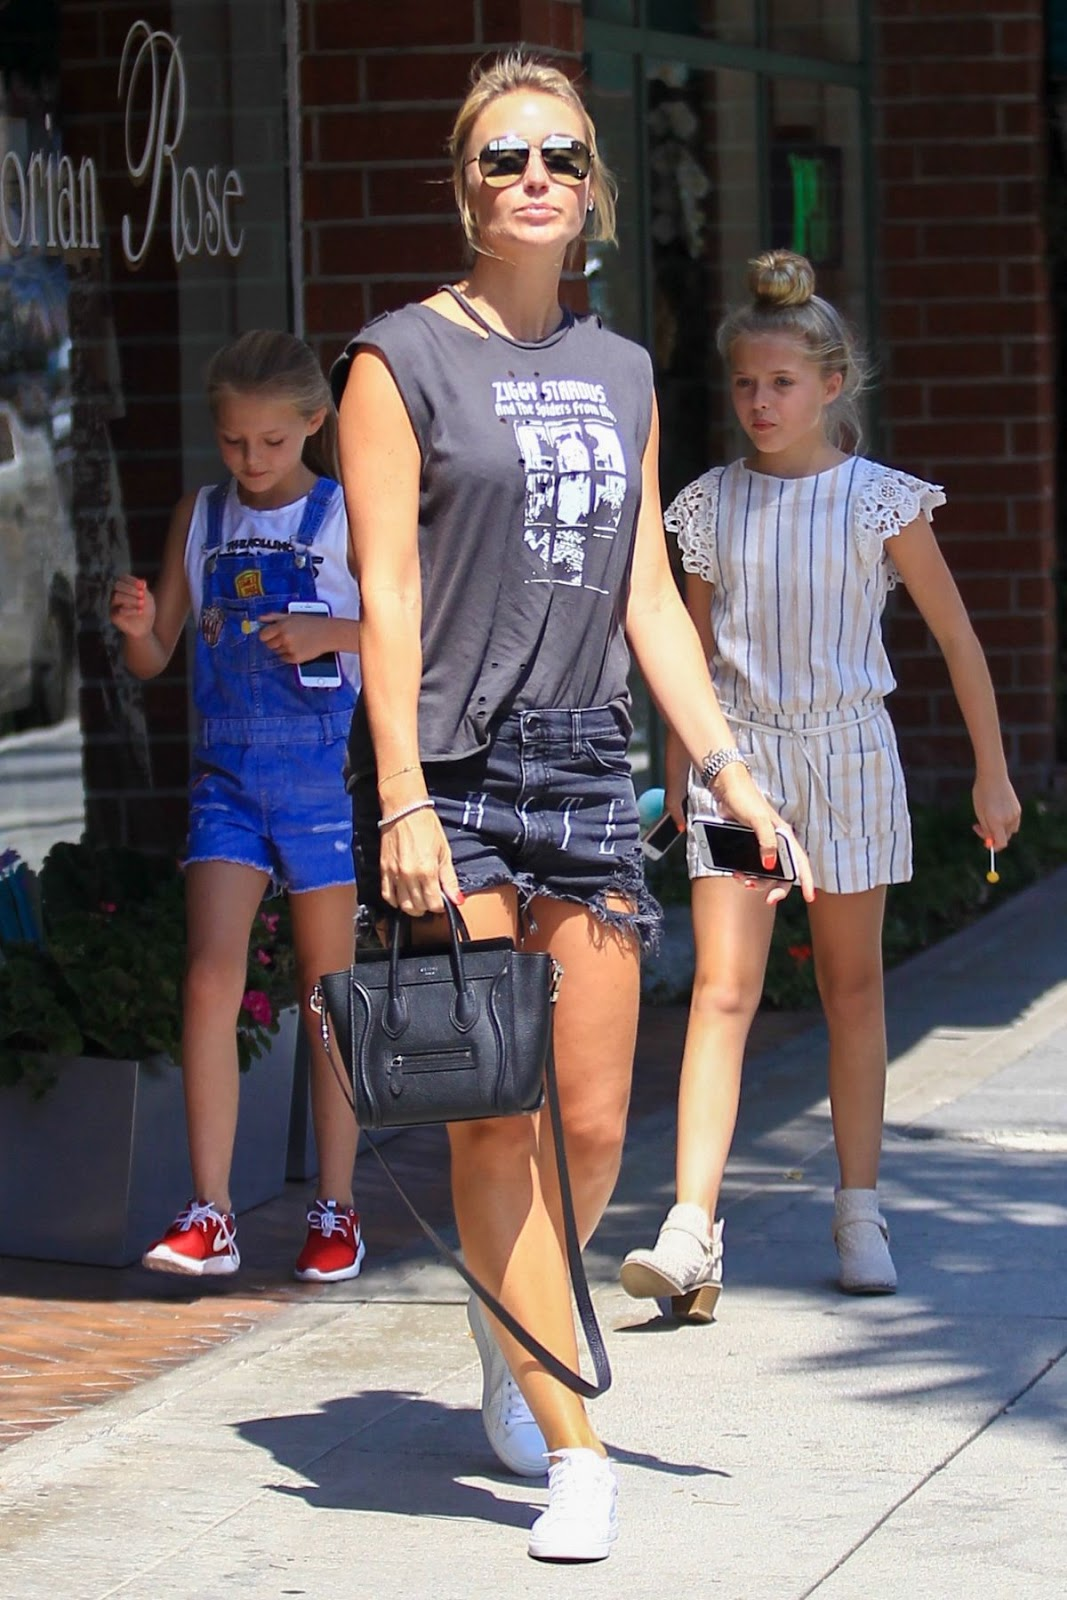 HQ Photos of Alex Curran in Short Jeans at A Nail Salon in Beverly Hills